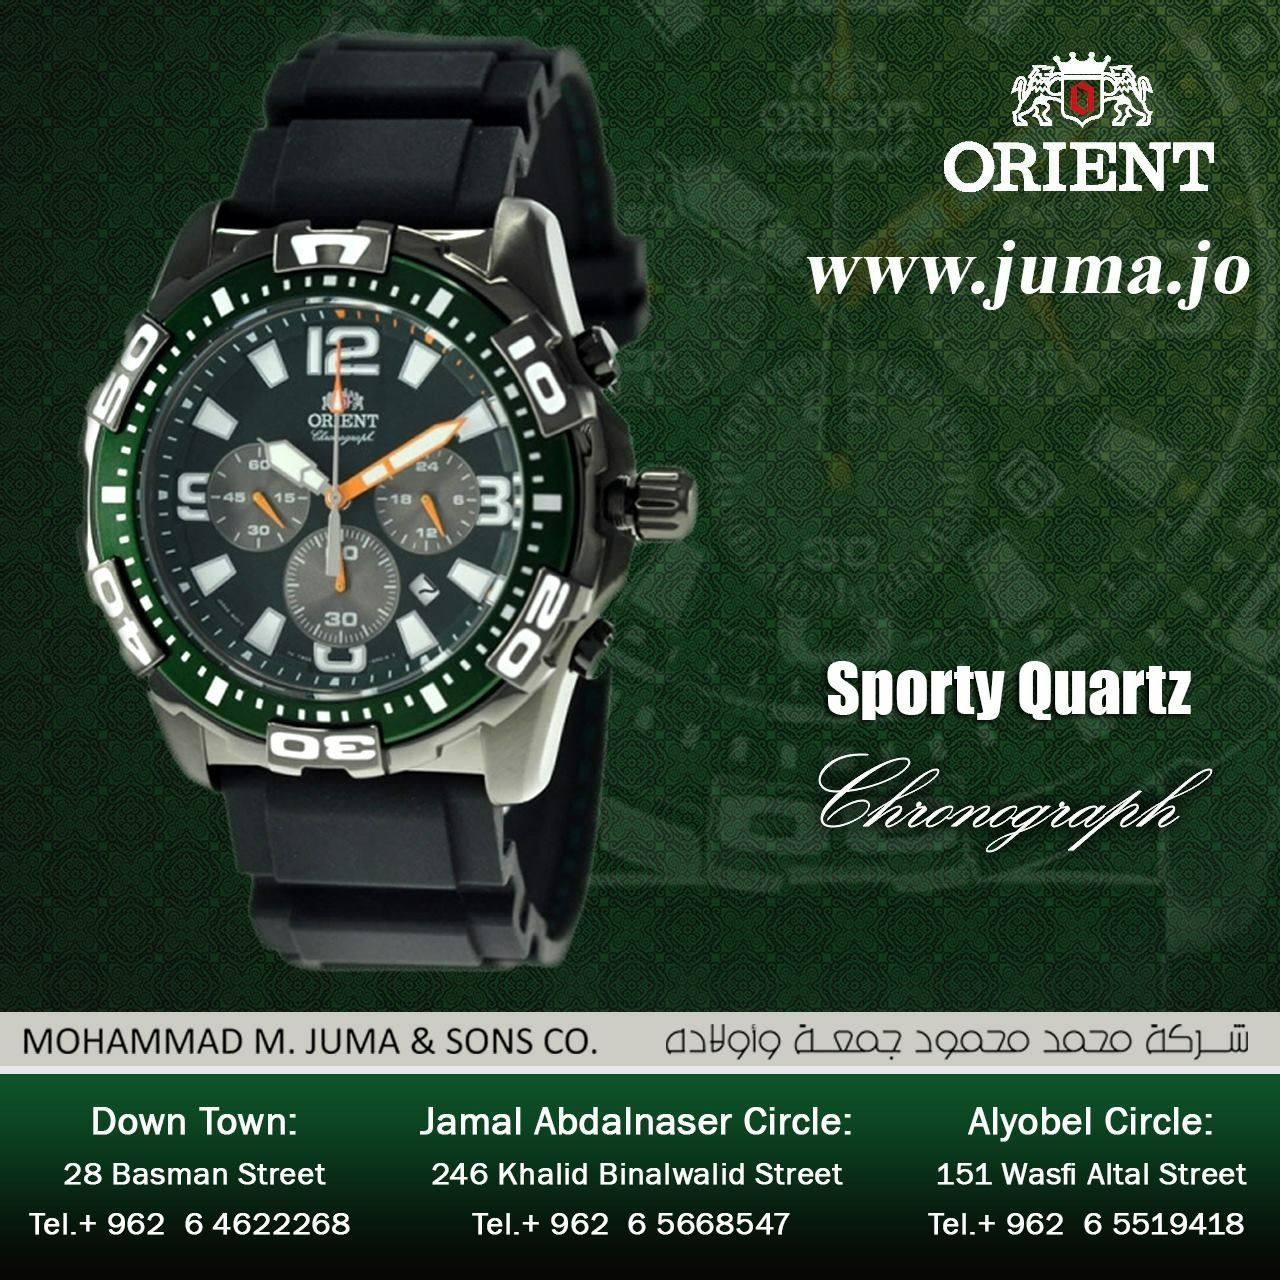 a688ddfd6 Check out the new arrival of orient sporty quartz watch... #orientwatch #